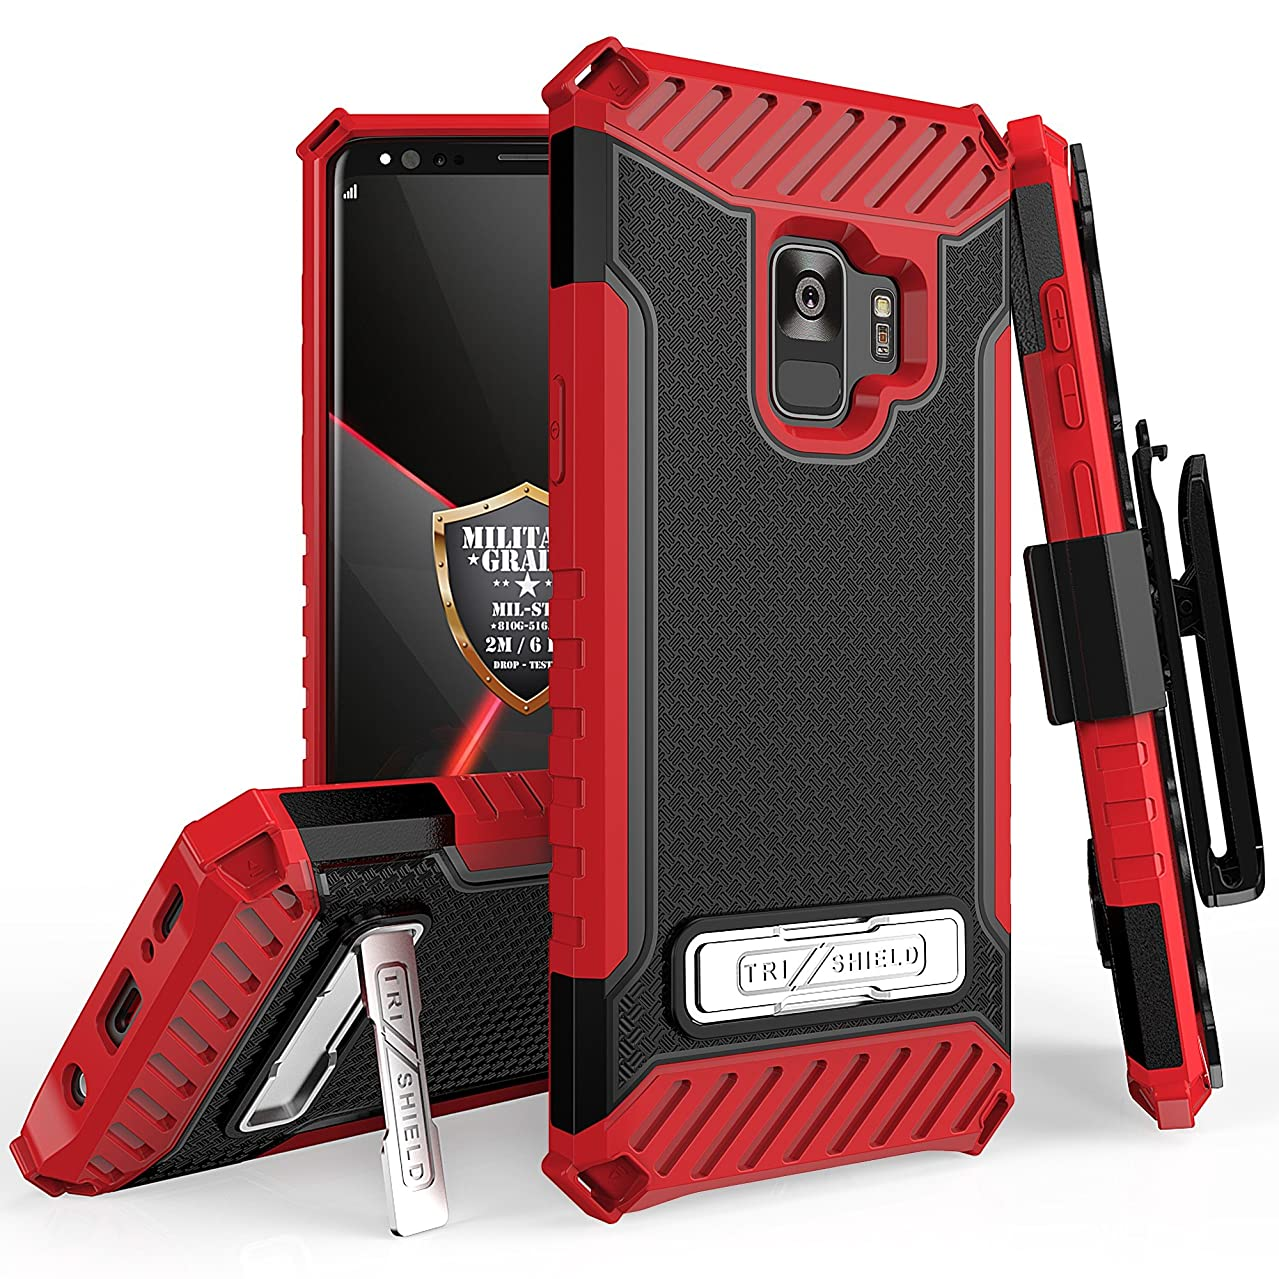 Galaxy S9 Plus / Galaxy S9+ Case Phone Case 360° Cover Screen Protector Clip Holster Kick stand Armor Layers Grip Sides Shock Bumper for Samsung S9+ (Black Red)